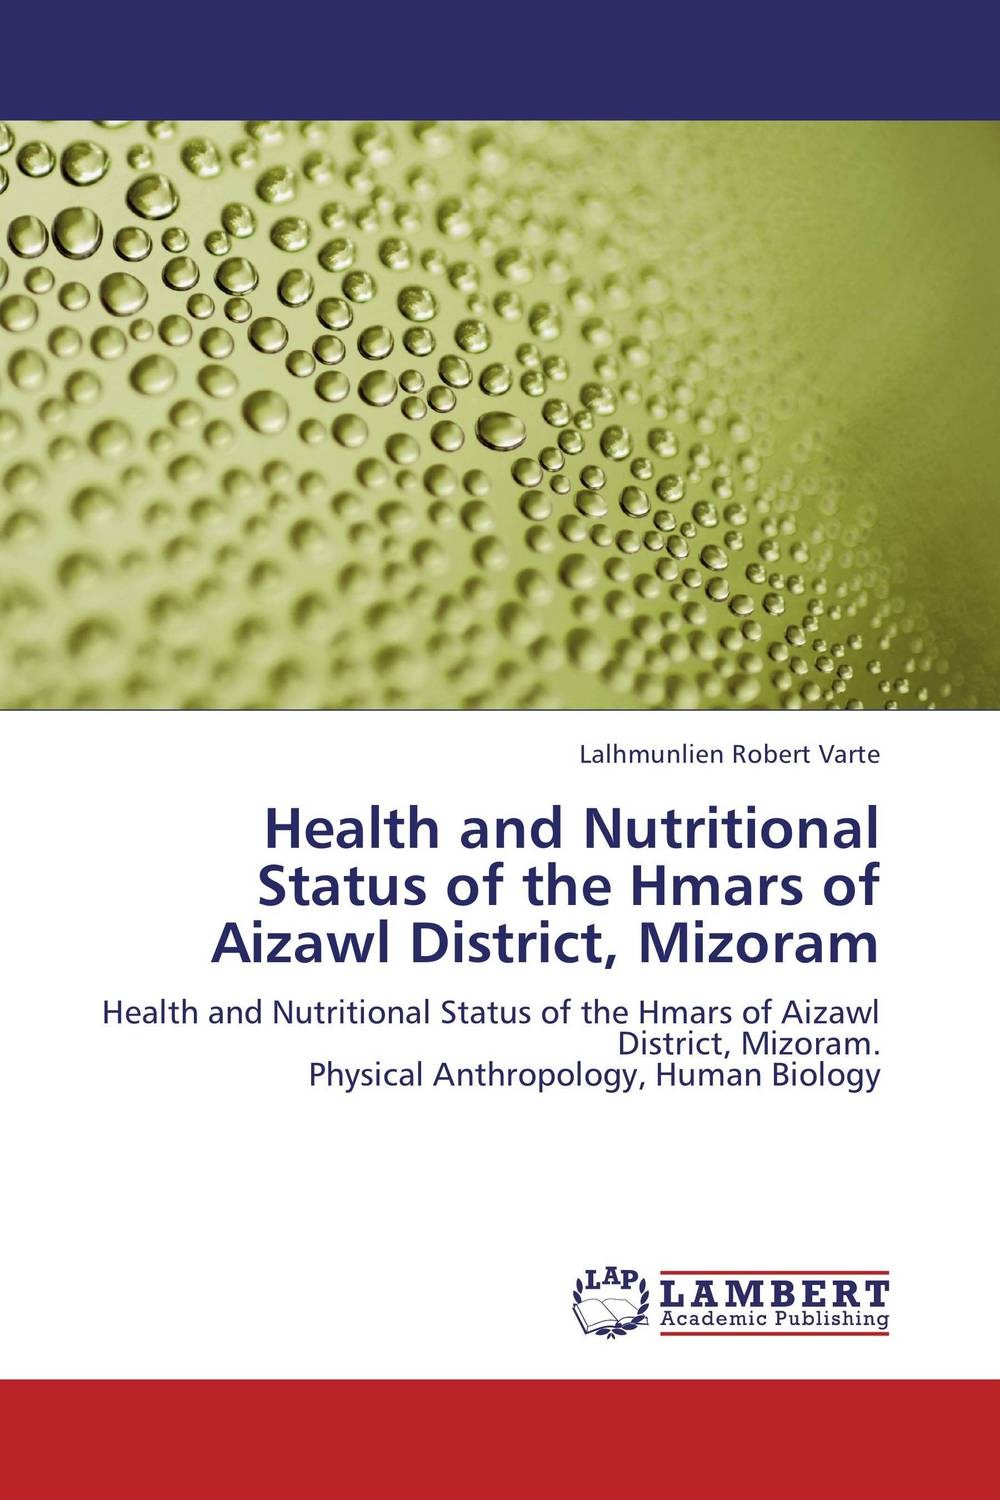 Health and Nutritional Status of the Hmars of Aizawl District, Mizoram